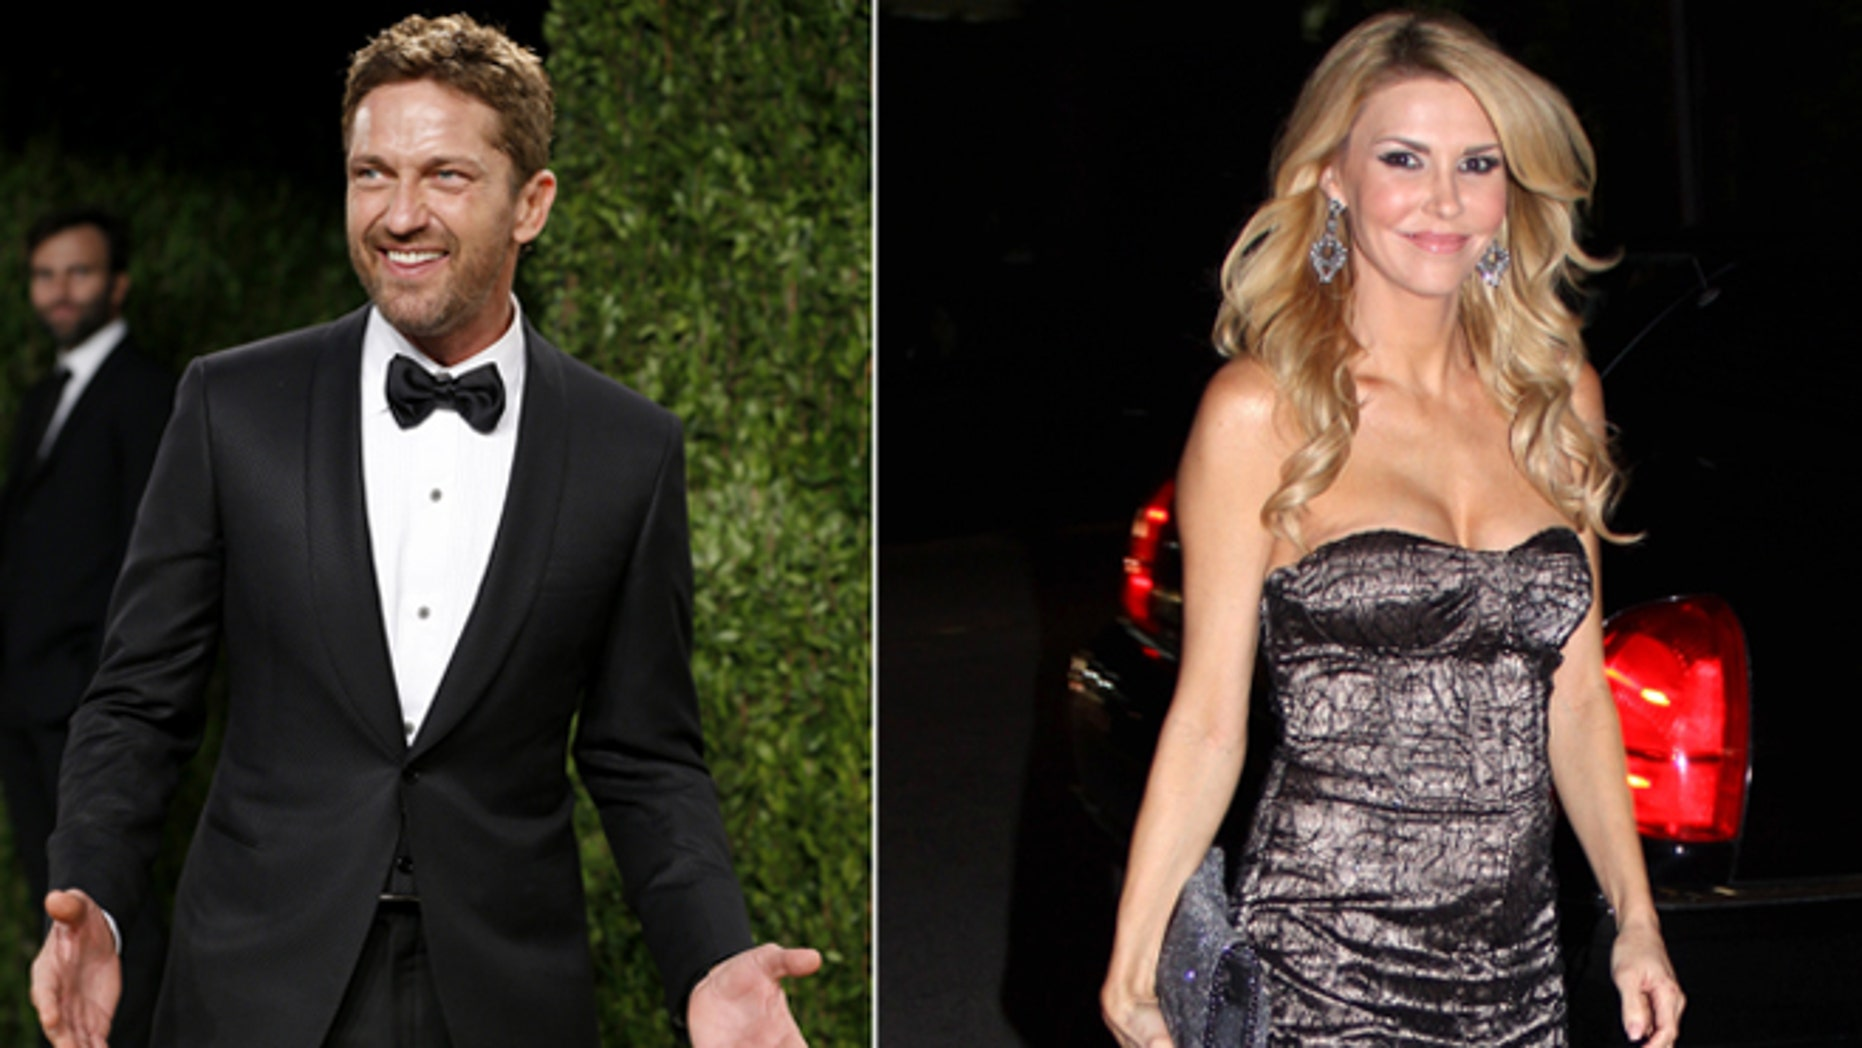 Gerard Butler, left, and Brandi Glanville.